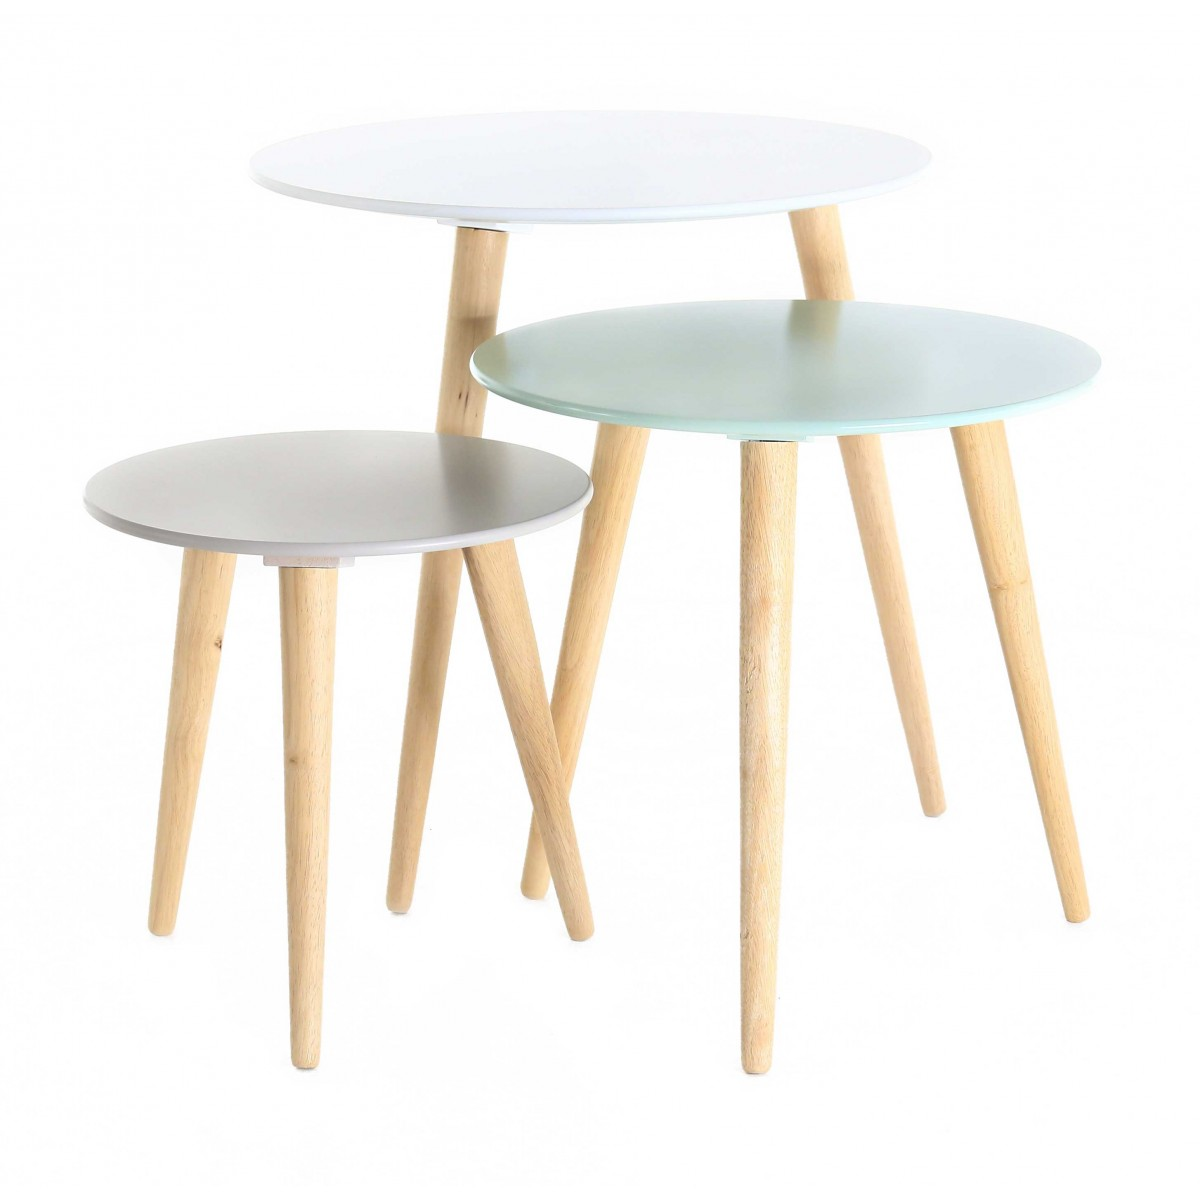 Set de 3 tables gigognes rondes scandinaves mooviin - Table blanche et bois ...